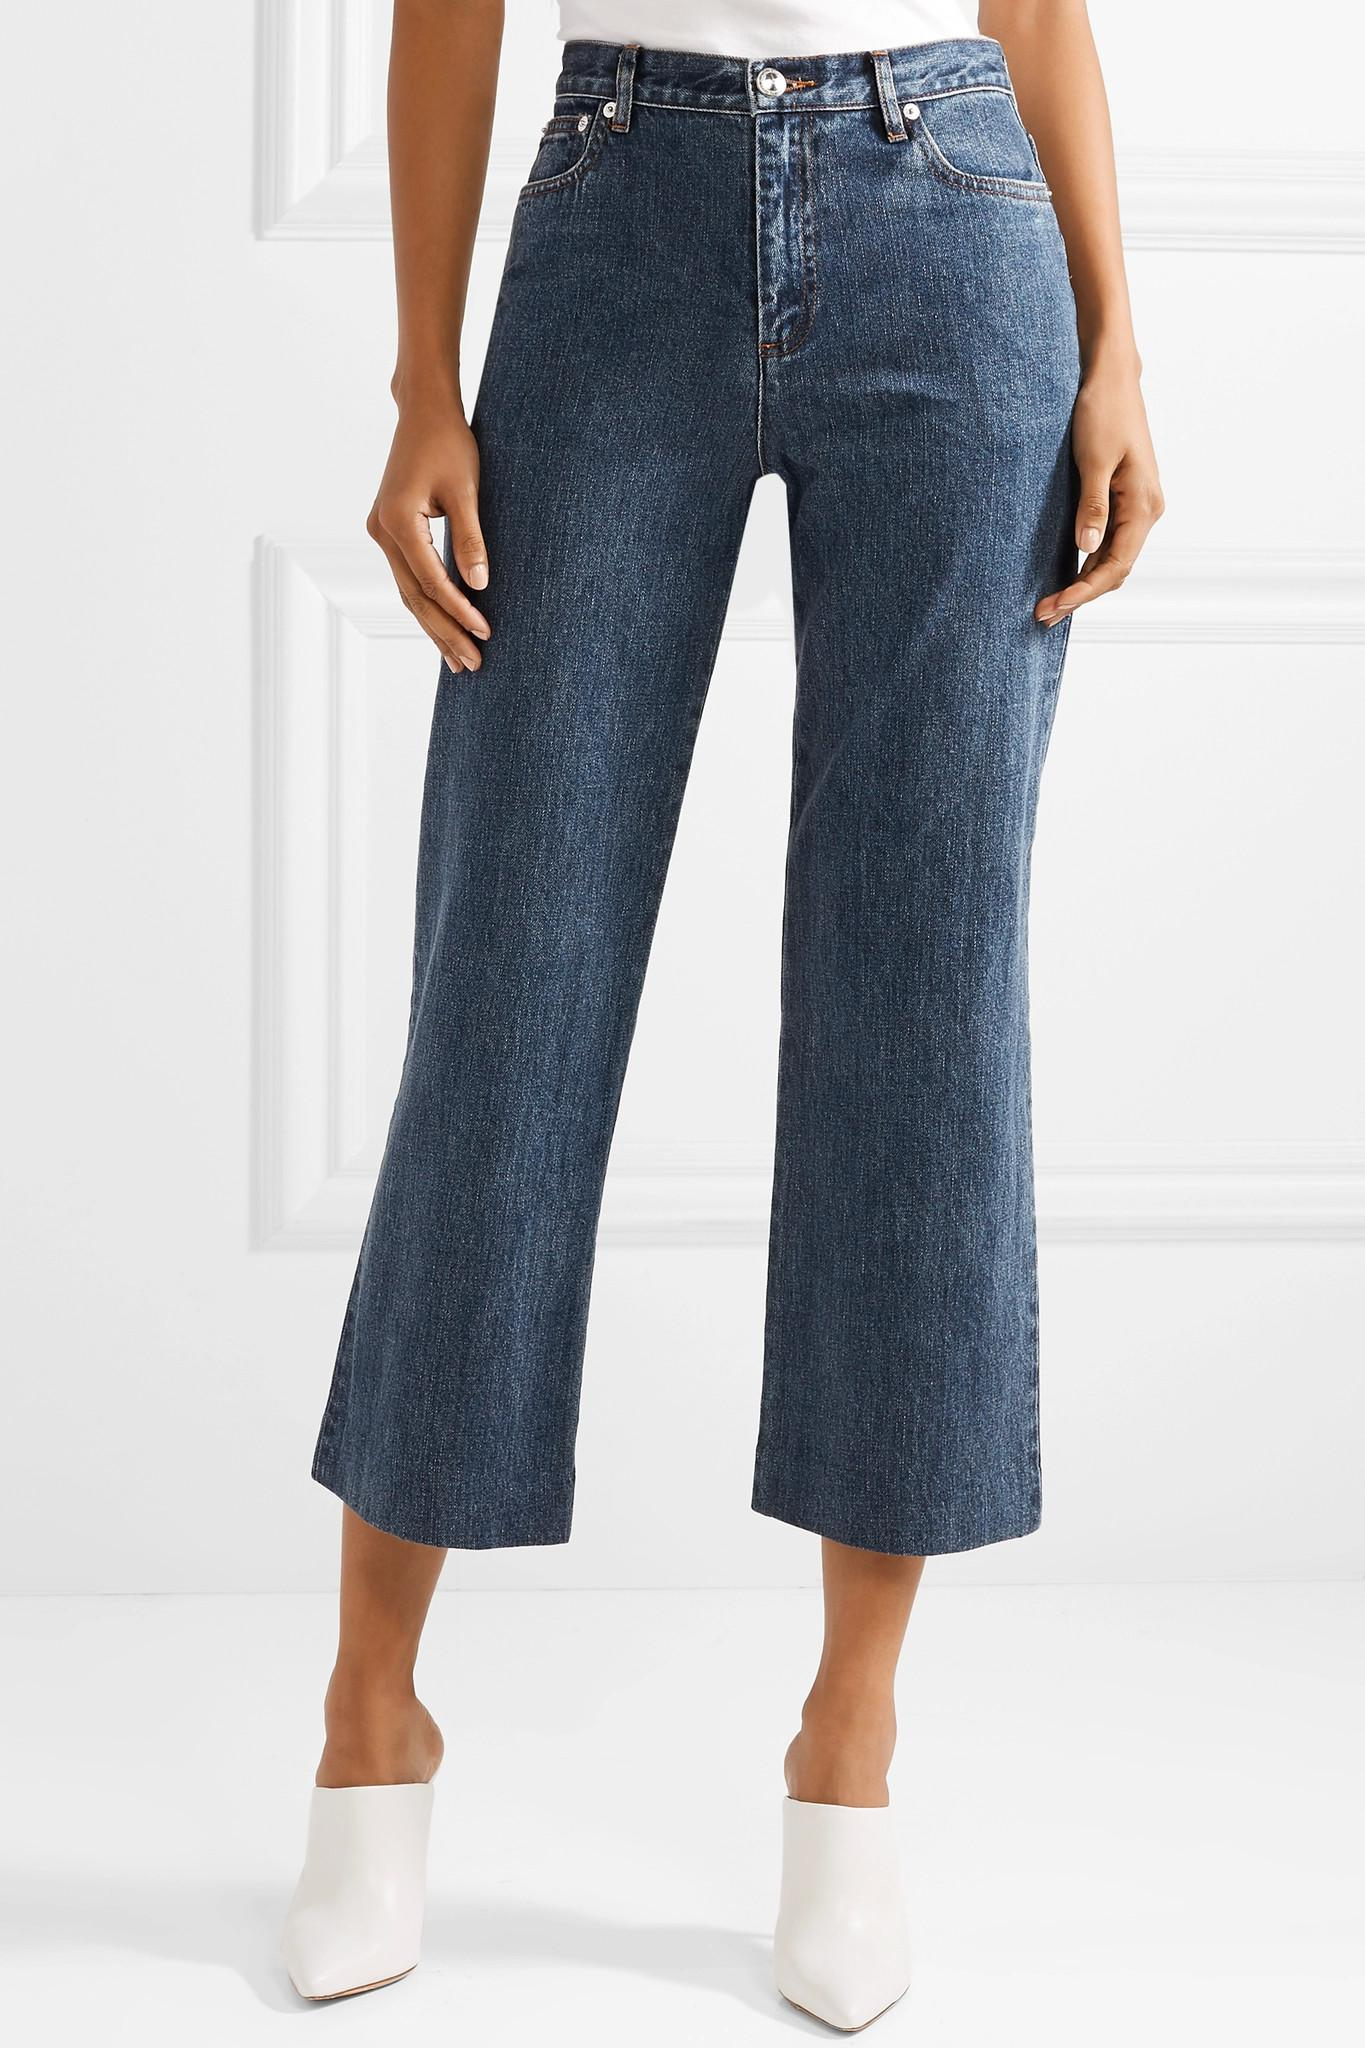 Sailor Cropped High-rise Straight-leg Jeans - Light denim A.P.C. 56pZIaH9X